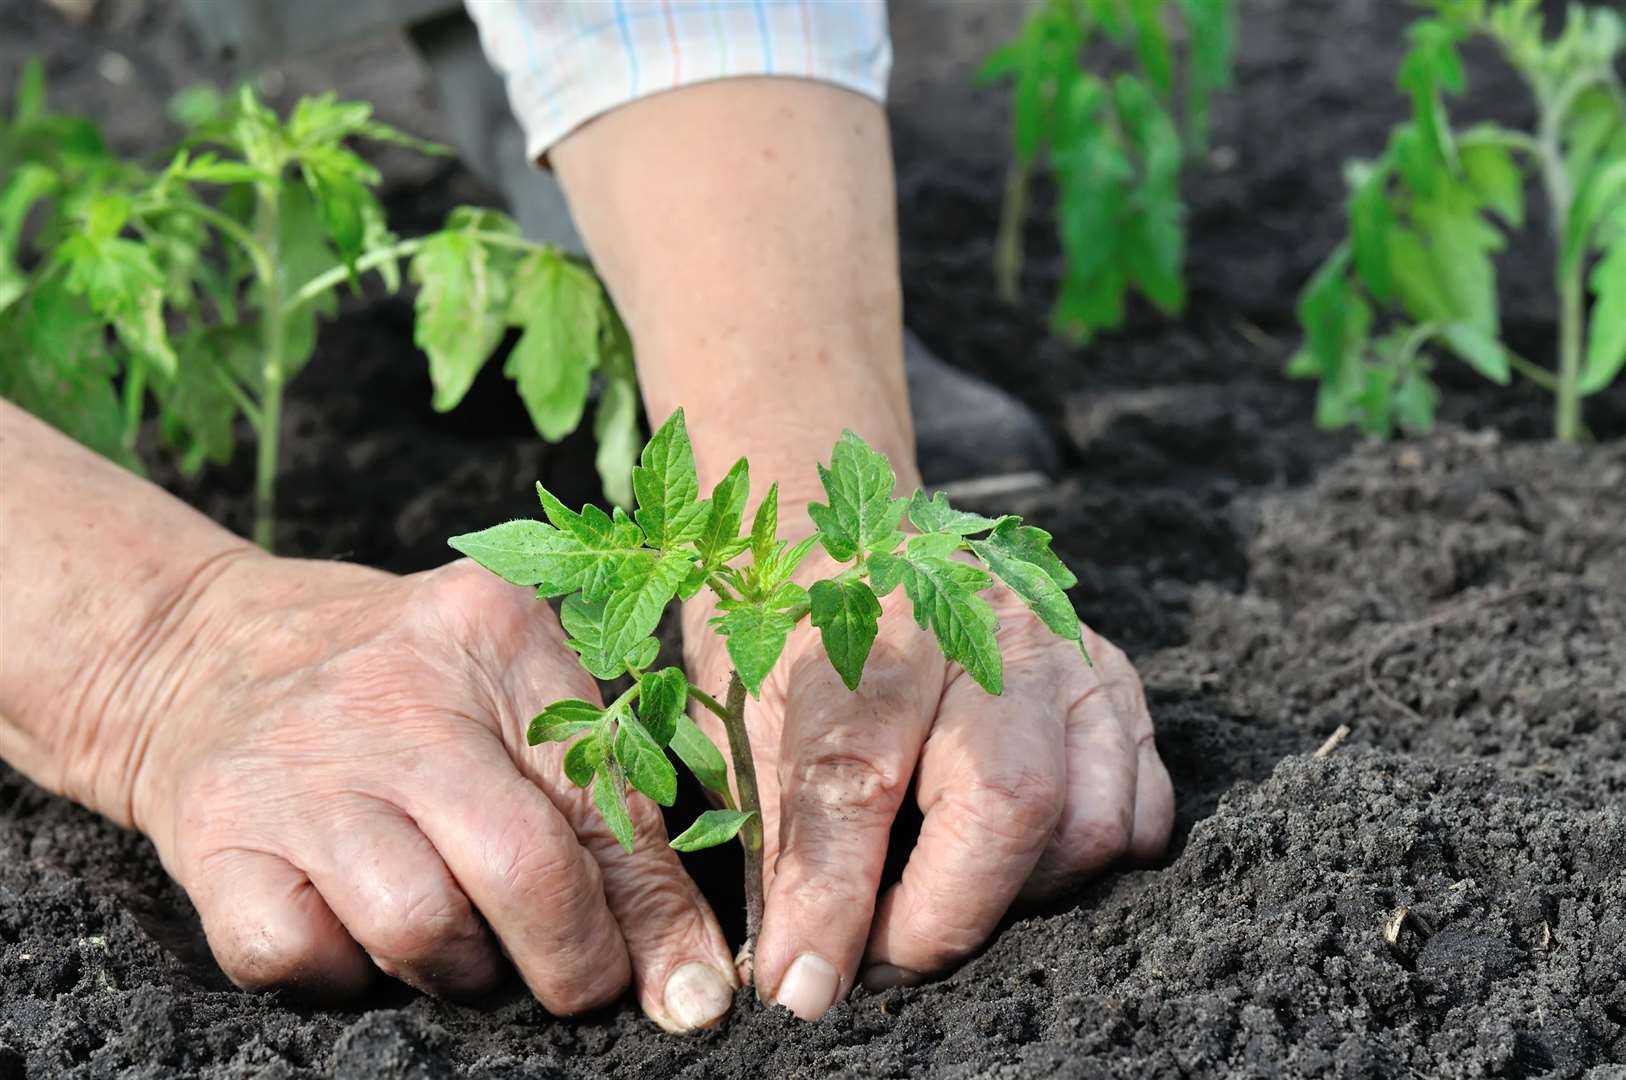 Planting tomatoes. Picture: iStock/PA